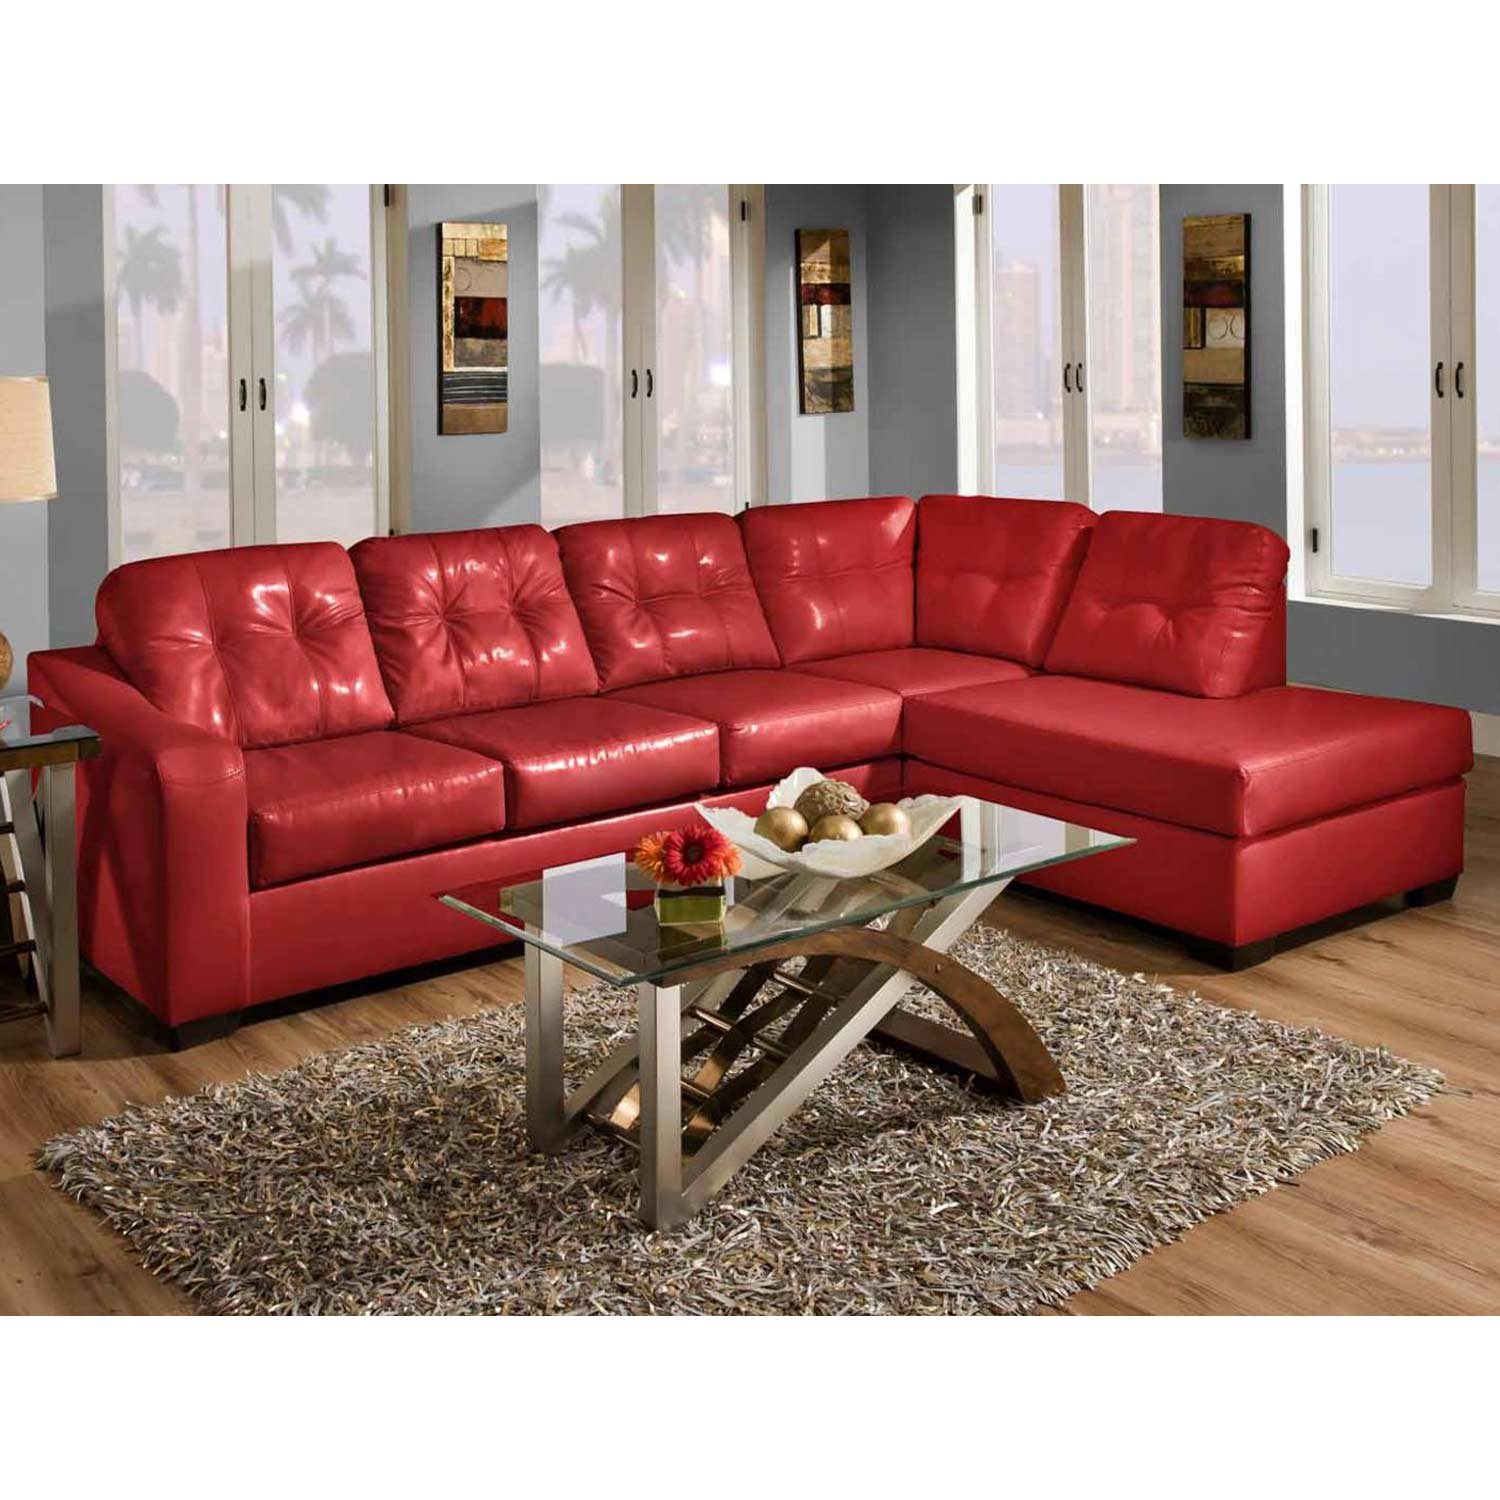 Omicron Chaise Sectional Sofa - Tufting, San Marino Red